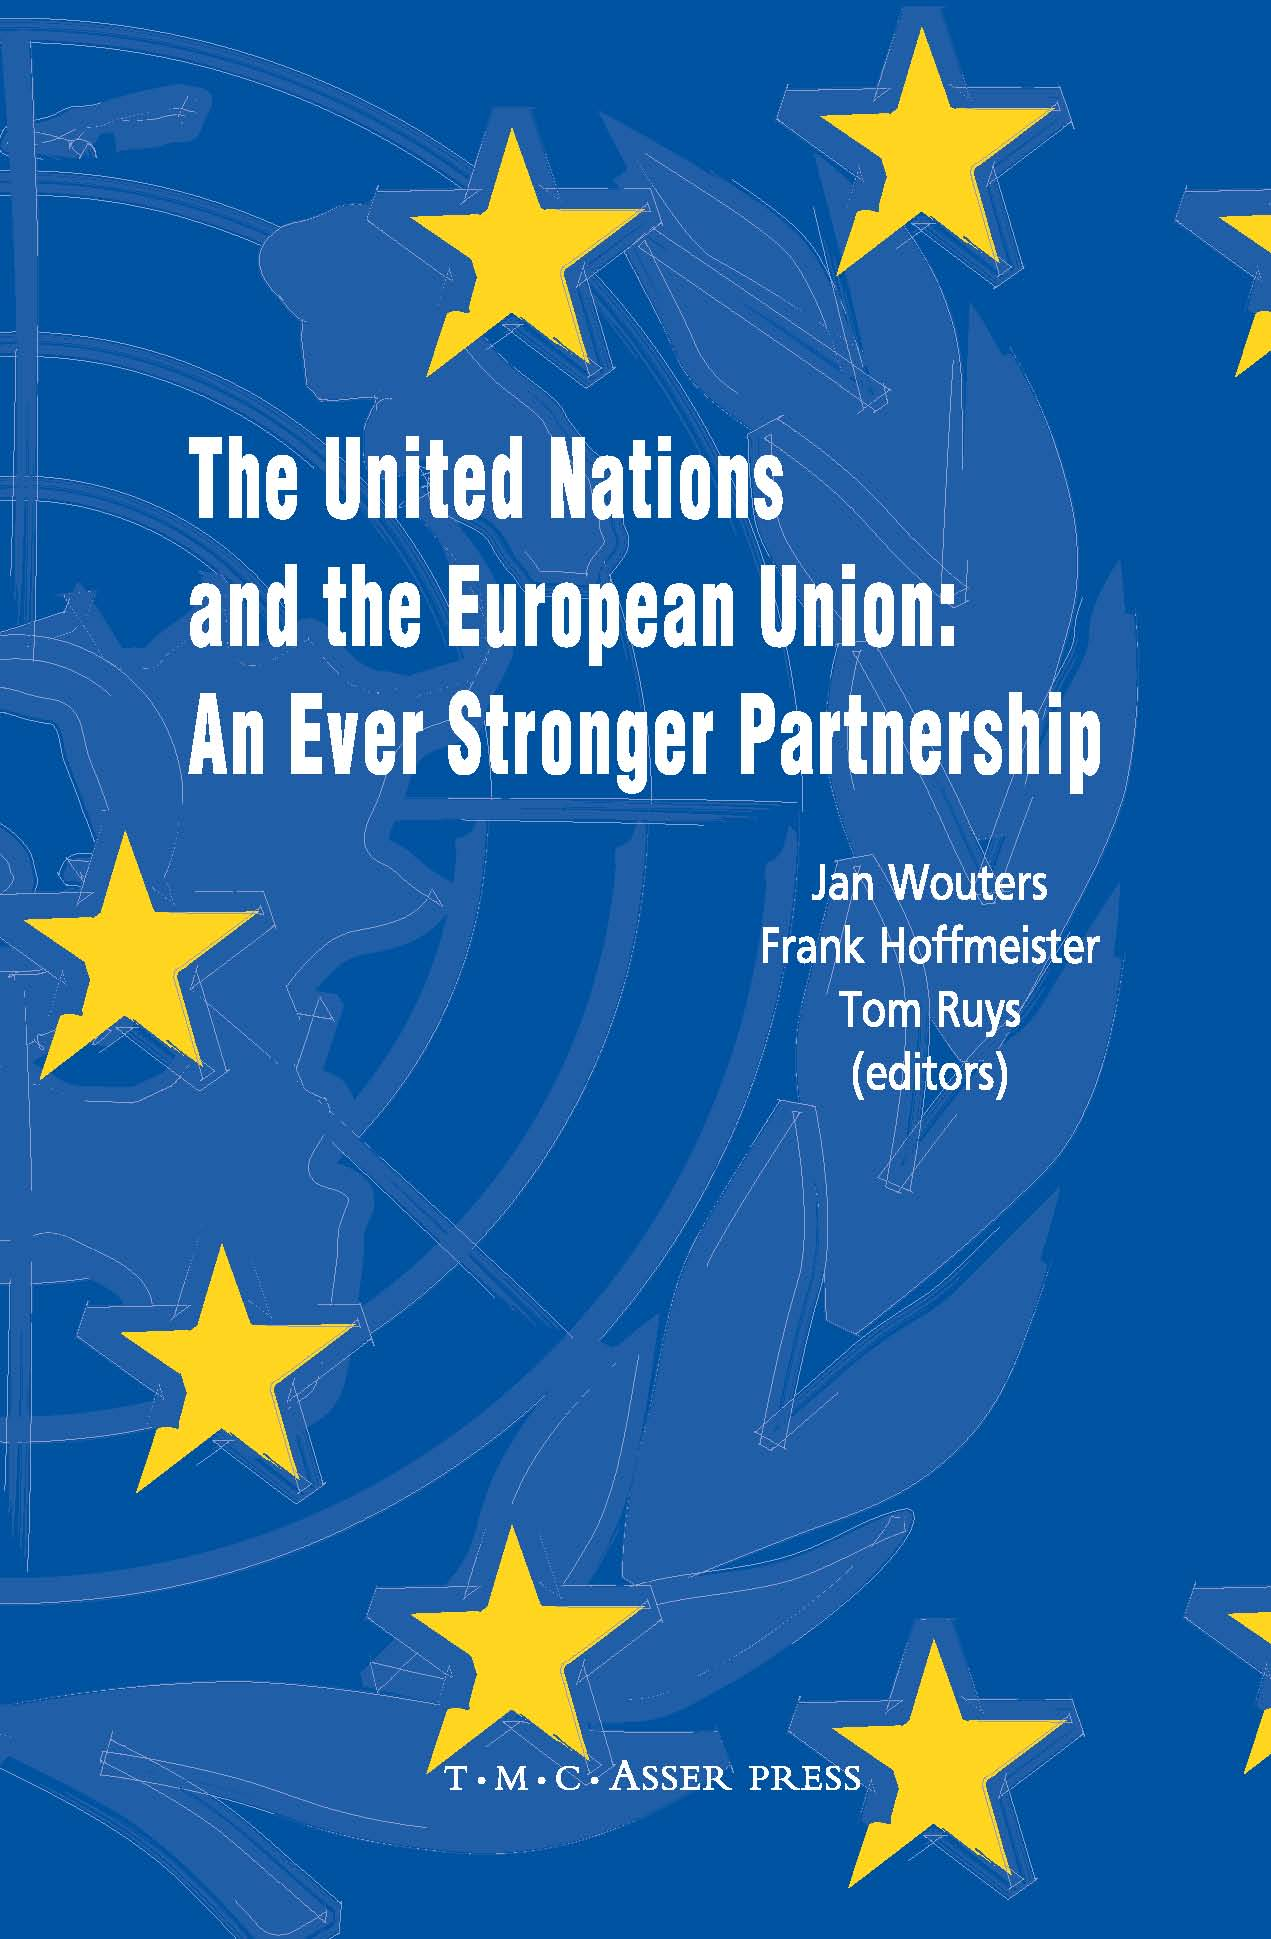 The United Nations and the European Union - An Ever Stronger Partnership